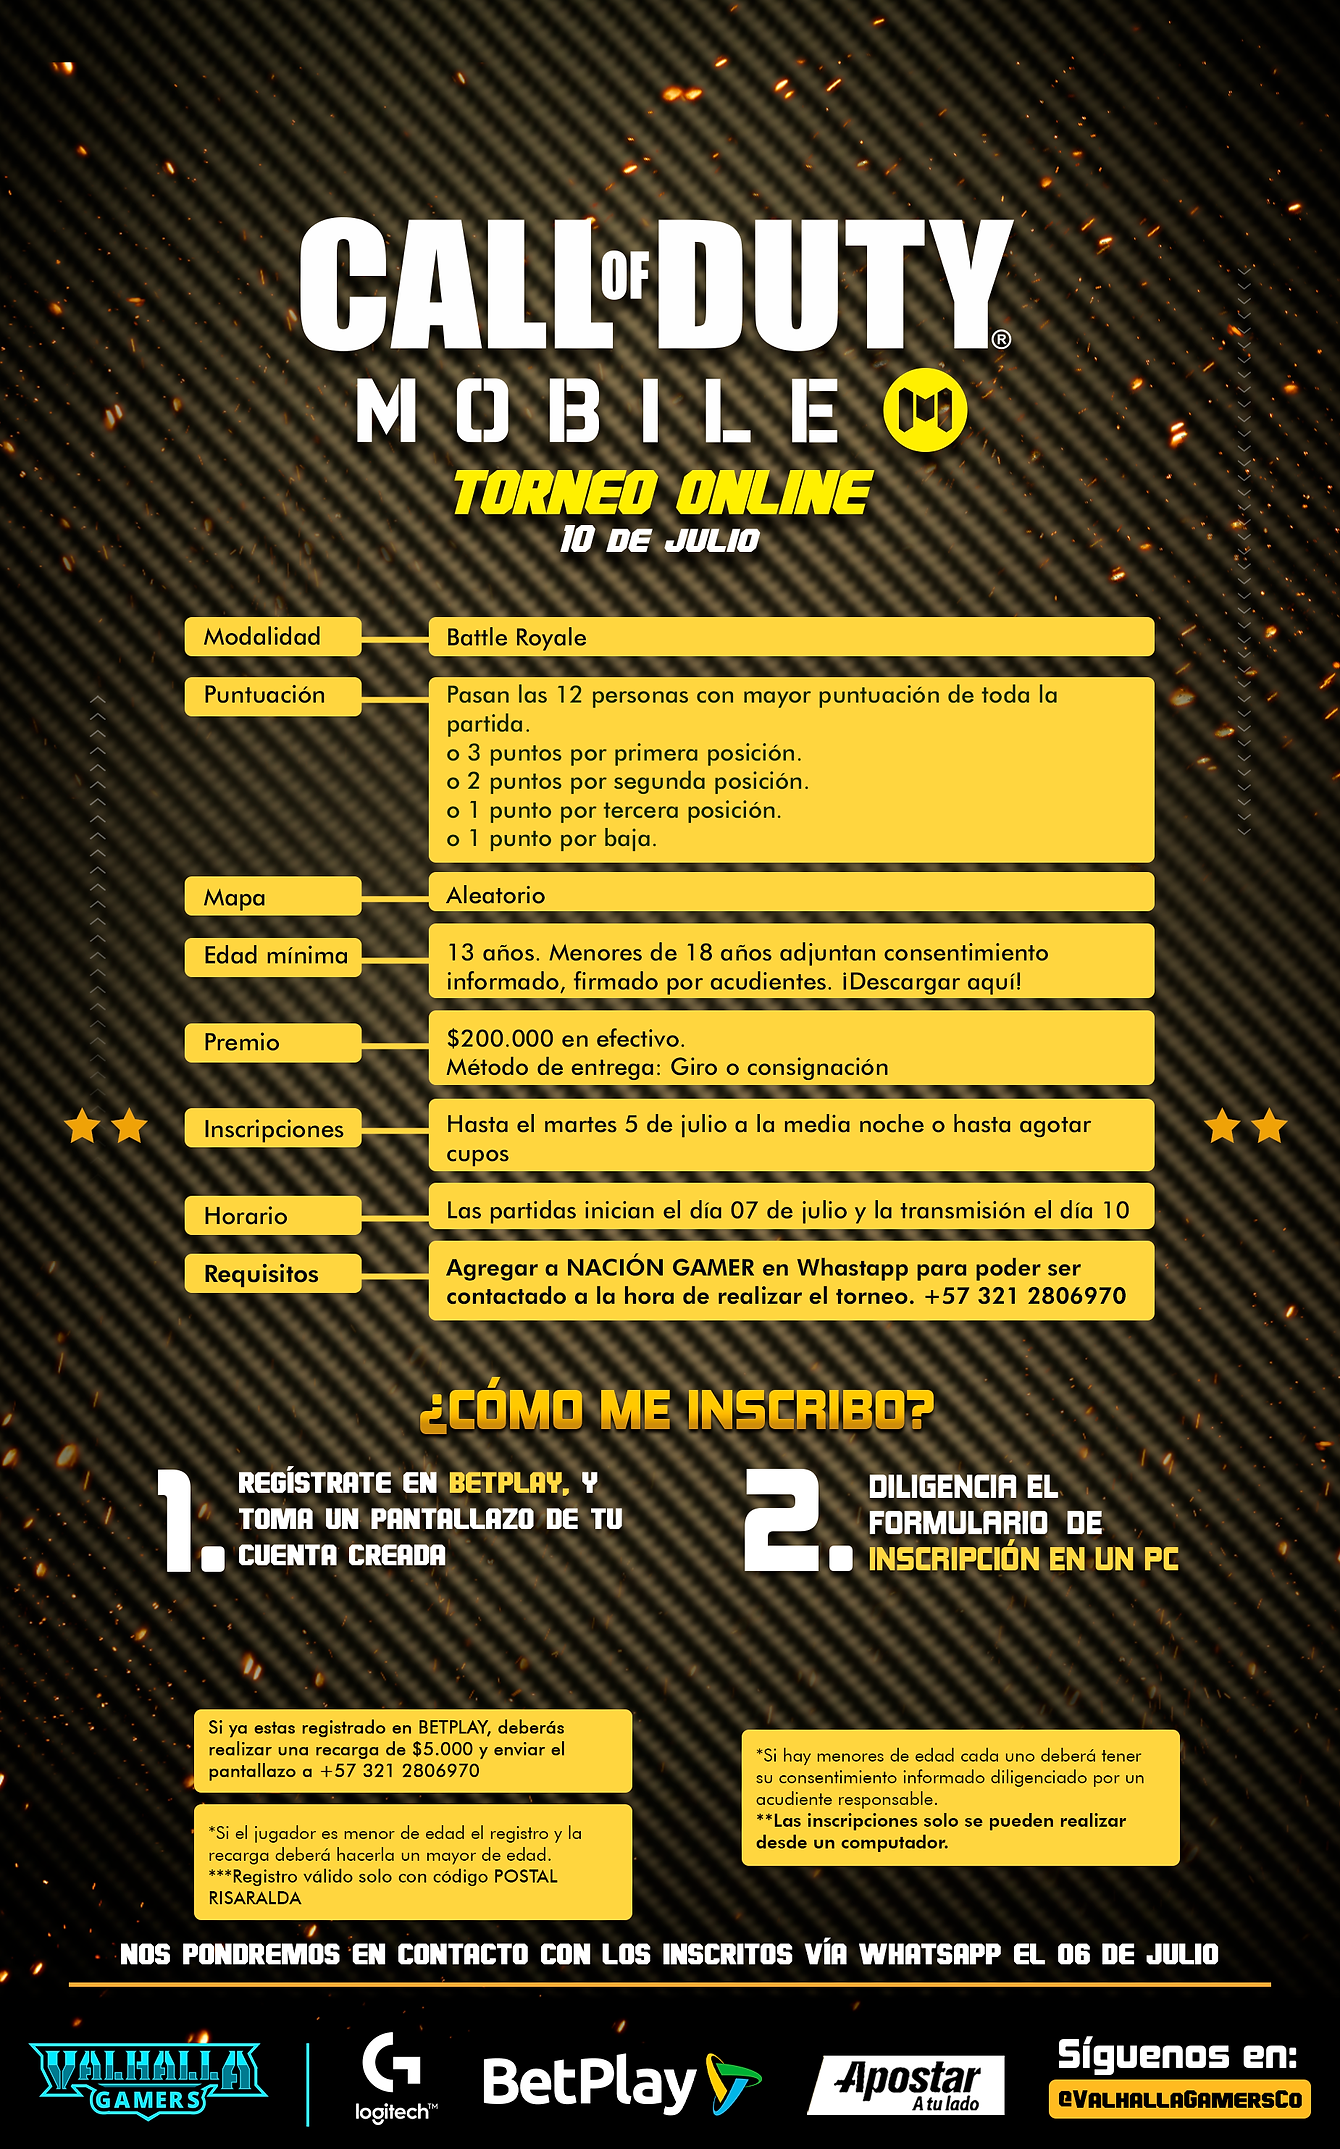 BannerWeb-COD-Mobile (1).png